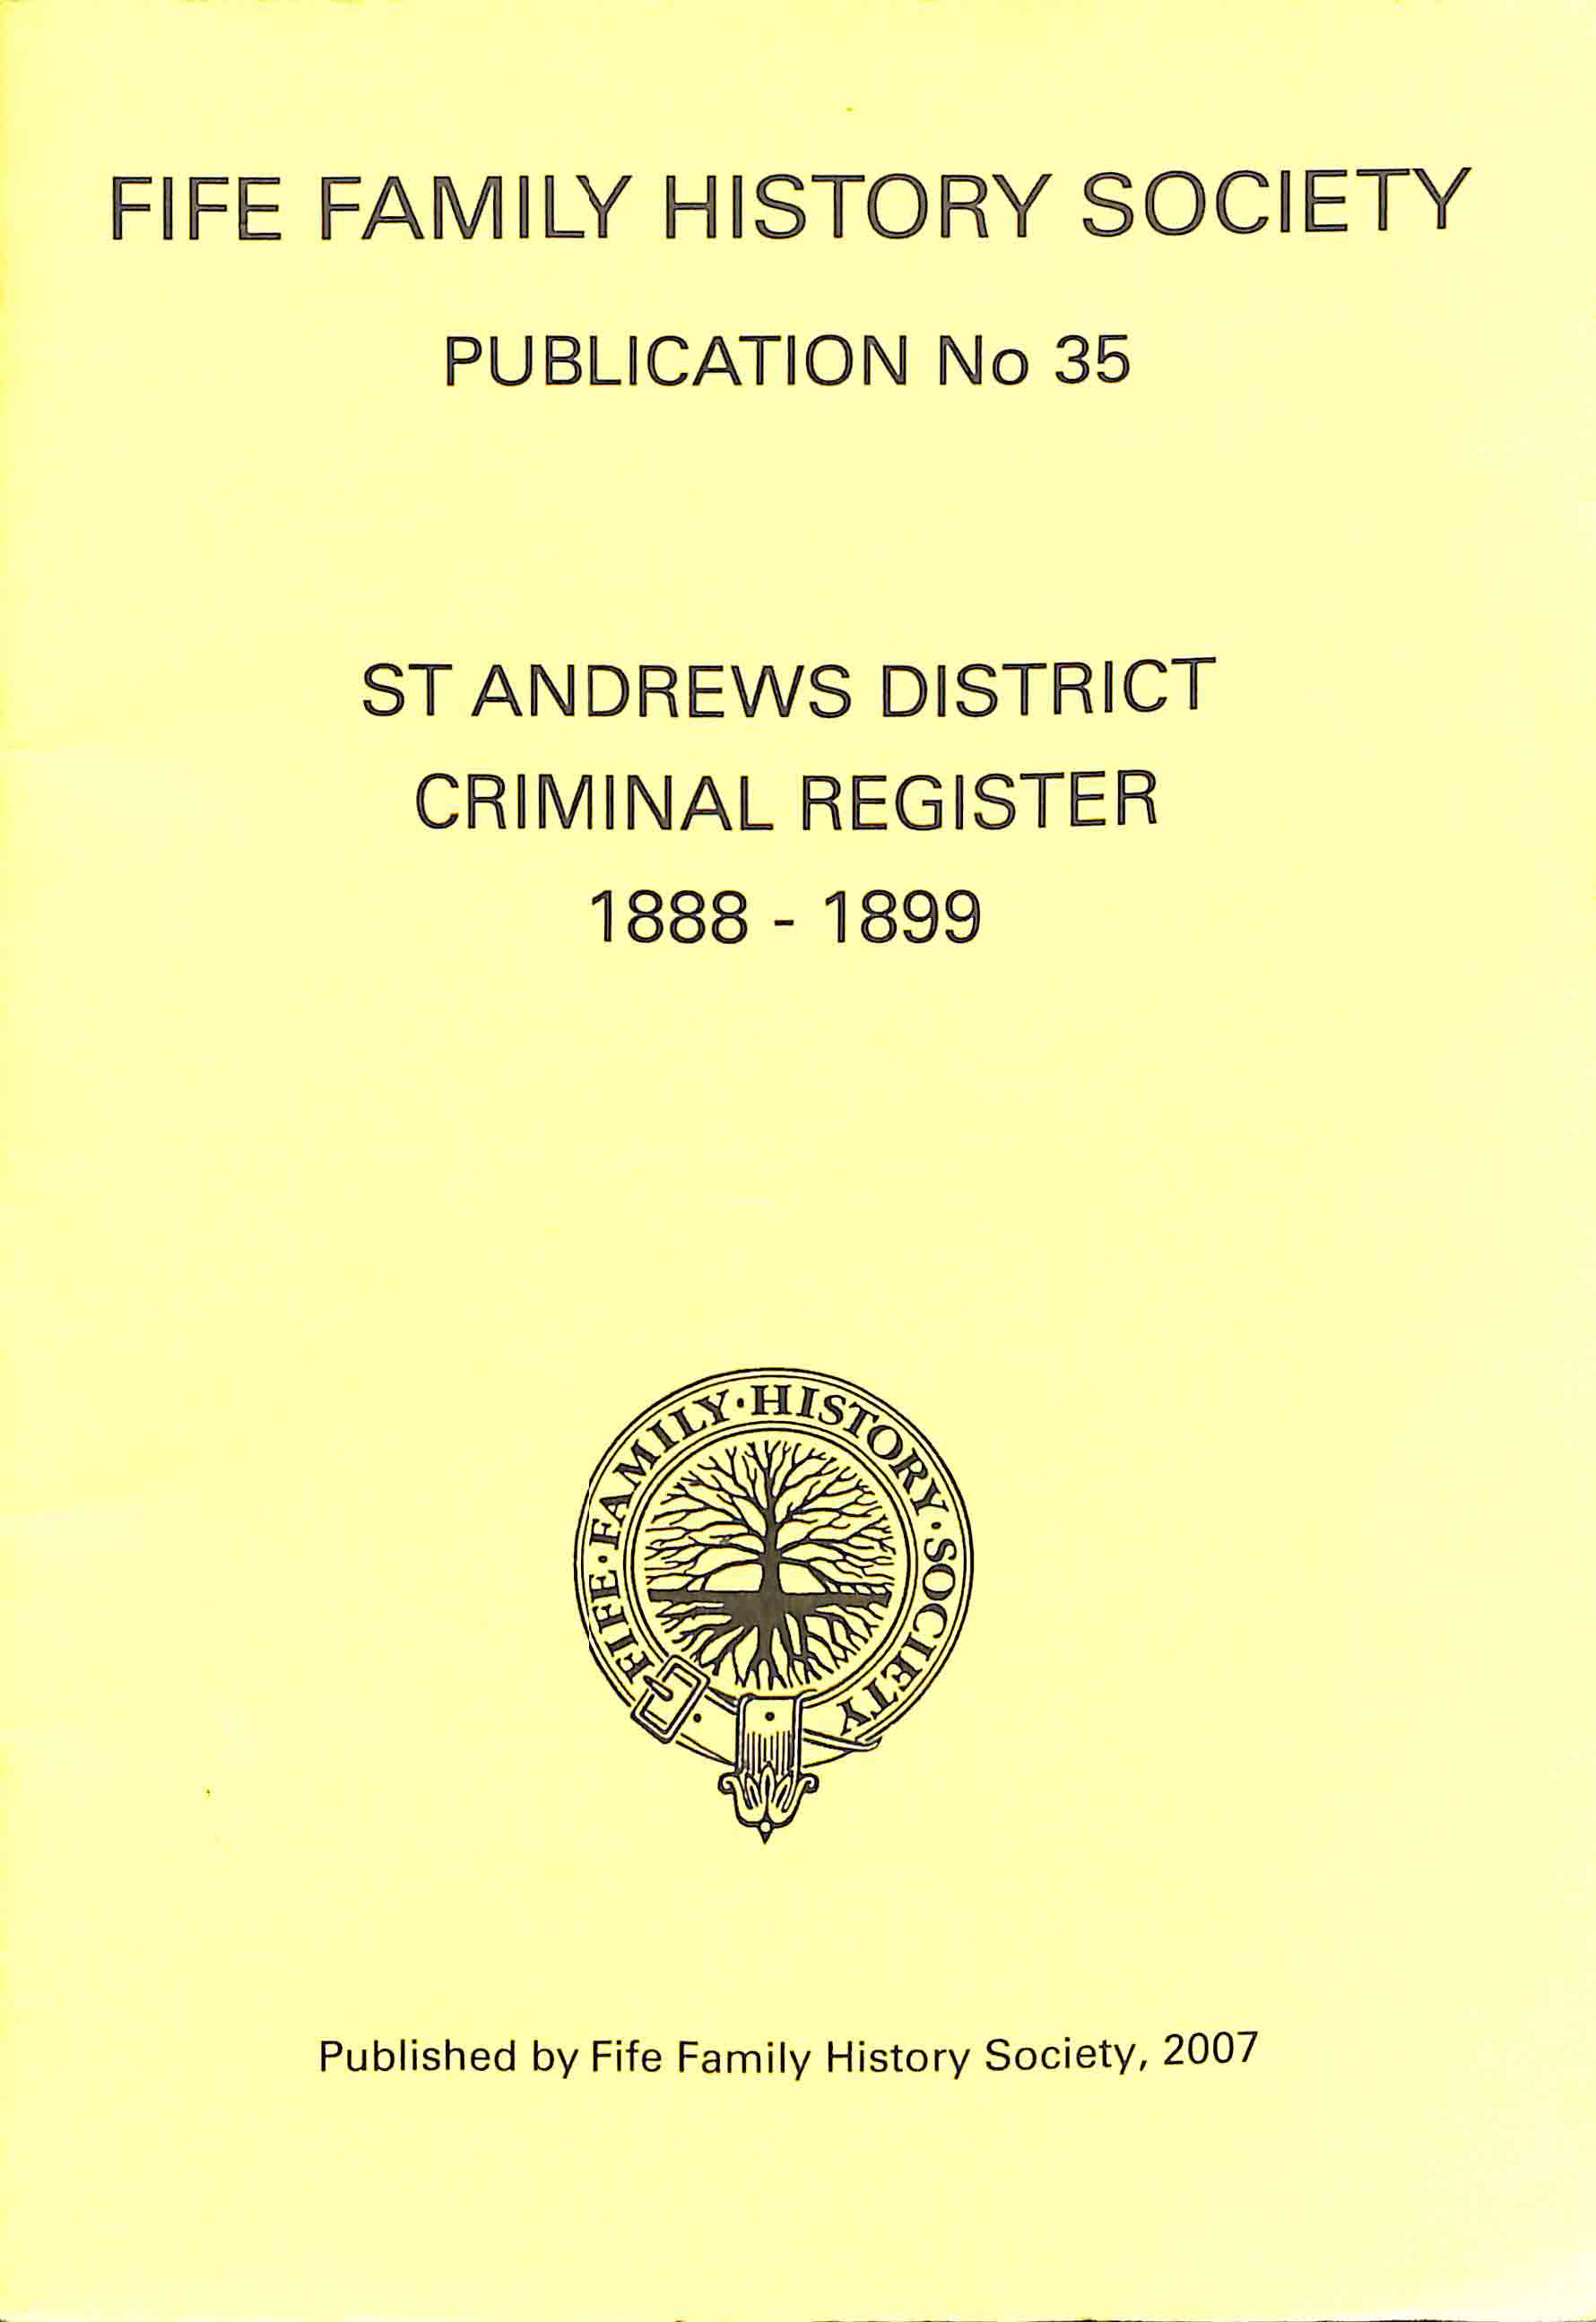 Publication 35, St Andrews District,Criminal Register, 1888-1899